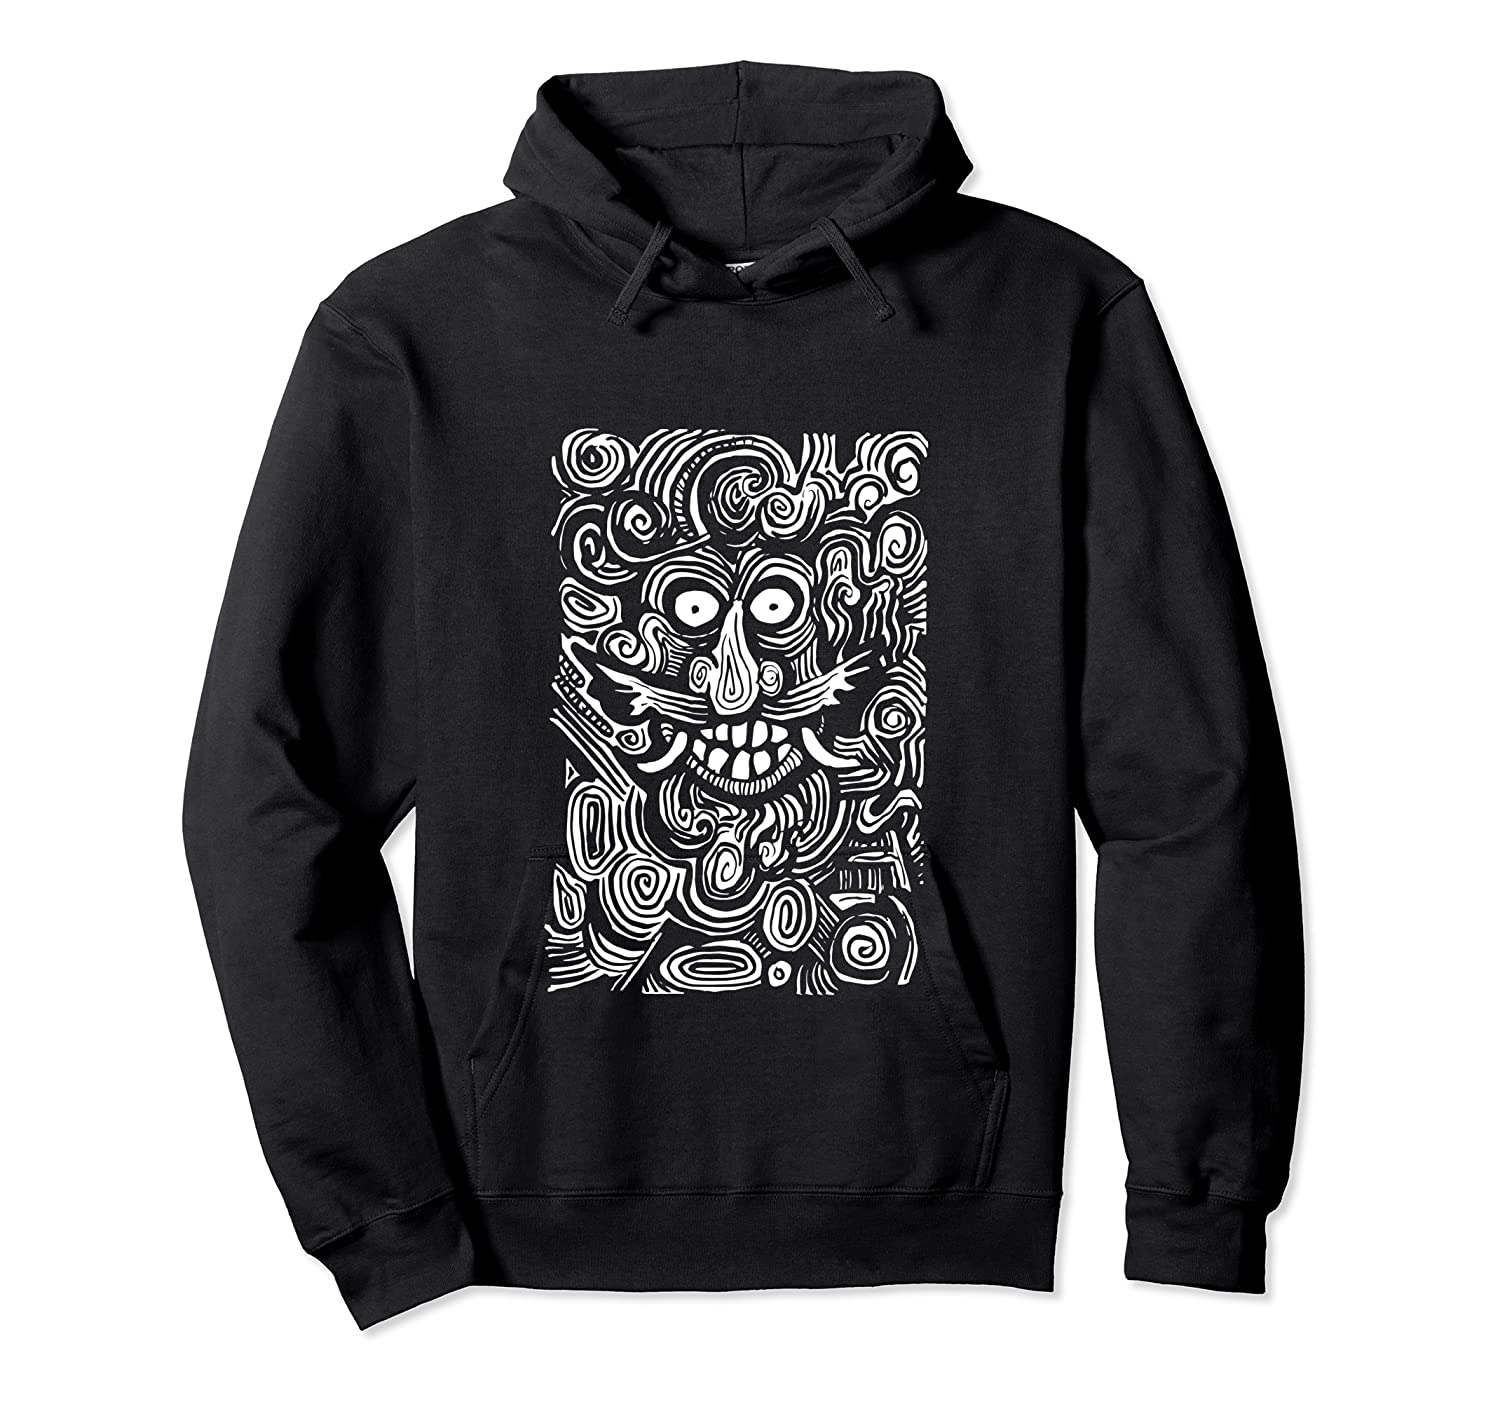 The Green Man Shirts Unisex Pullover Hoodie